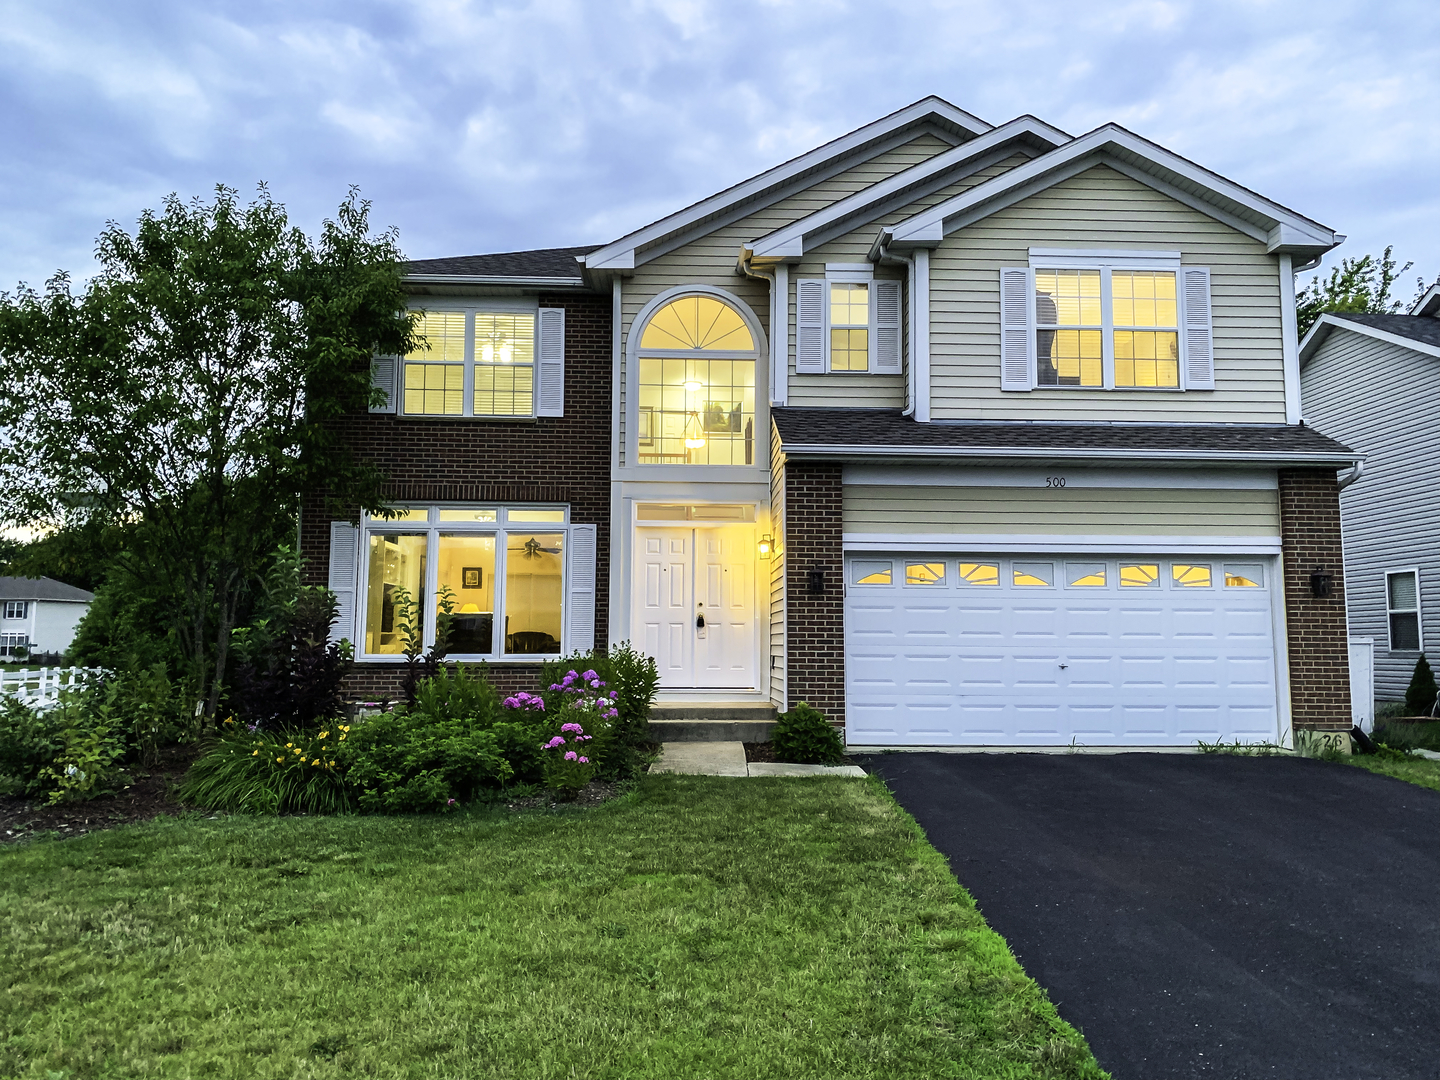 Welcome to this fantastic, move-in ready home nestled in the stunning Hidden Ponds subdivision!  You'll fall in love with everything this property has to offer from the moment you arrive.  You'll adore the dramatic 2 story Foyer, open layout, gleaming wood floors, cozy fireplace, spacious Kitchen w/gorgeous glass mosaic tile, large island, & huge walk-in pantry!   Enjoy a truly enormous Master Suite with walk-in closet and whirlpool tub in the private Master Bath!  Plus, extra windows throughout for tons of light, multiple closets and storage areas, beautiful yard with shed, and a walk-out basement that is just waiting for your finishing touches - Too much to list!  Extra large, professionally landscaped corner lot located within minutes of the train.  This is THE ONE you've been waiting for so hurry to come see it, fall in love, and make your offer today!